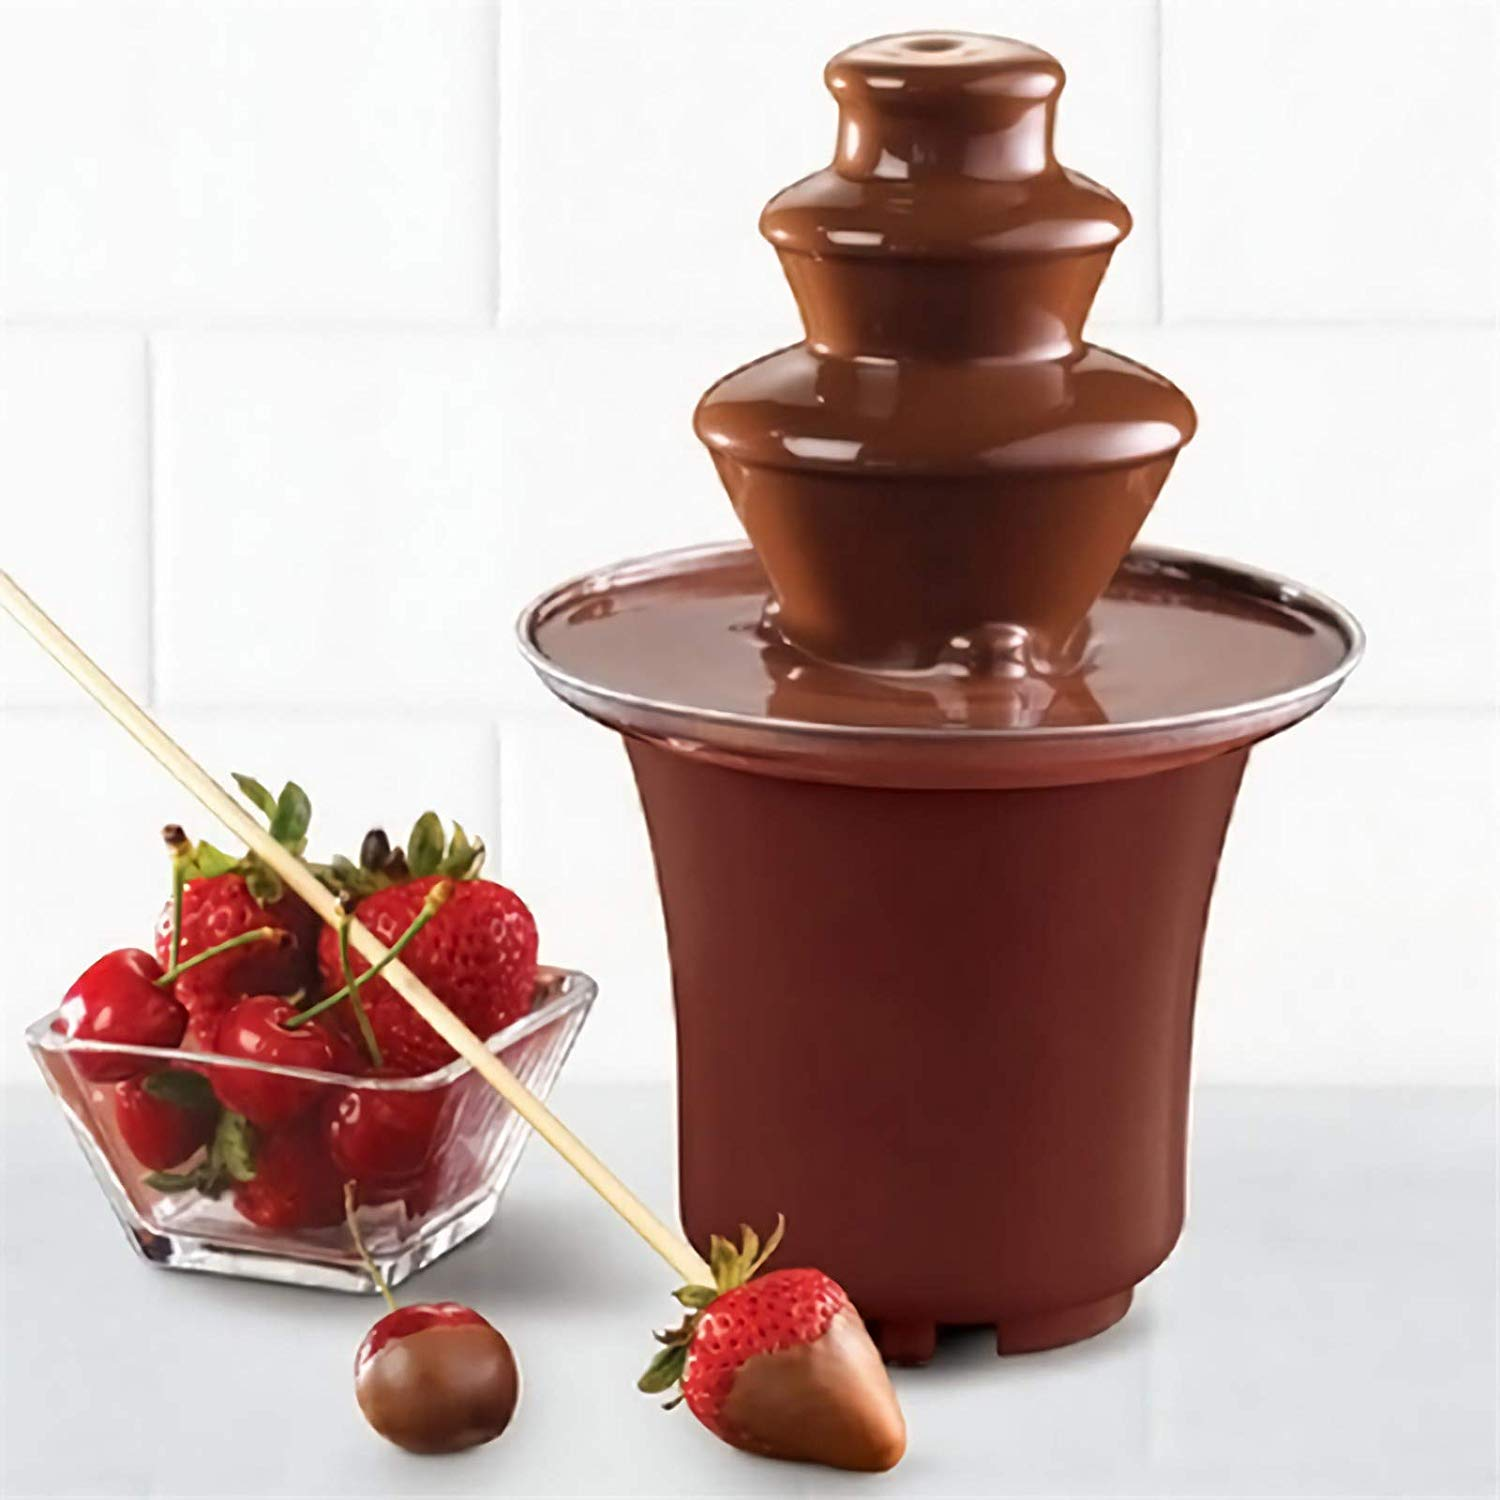 Chocolate Fondue Electric Fountain 3-Tier Melting Machine Stainless Steel Pots Dessert for Melted Chocolate, Candy, Butter, Cheese, Caramel Dip Mini Size, 1.5-2 Pound Capacity